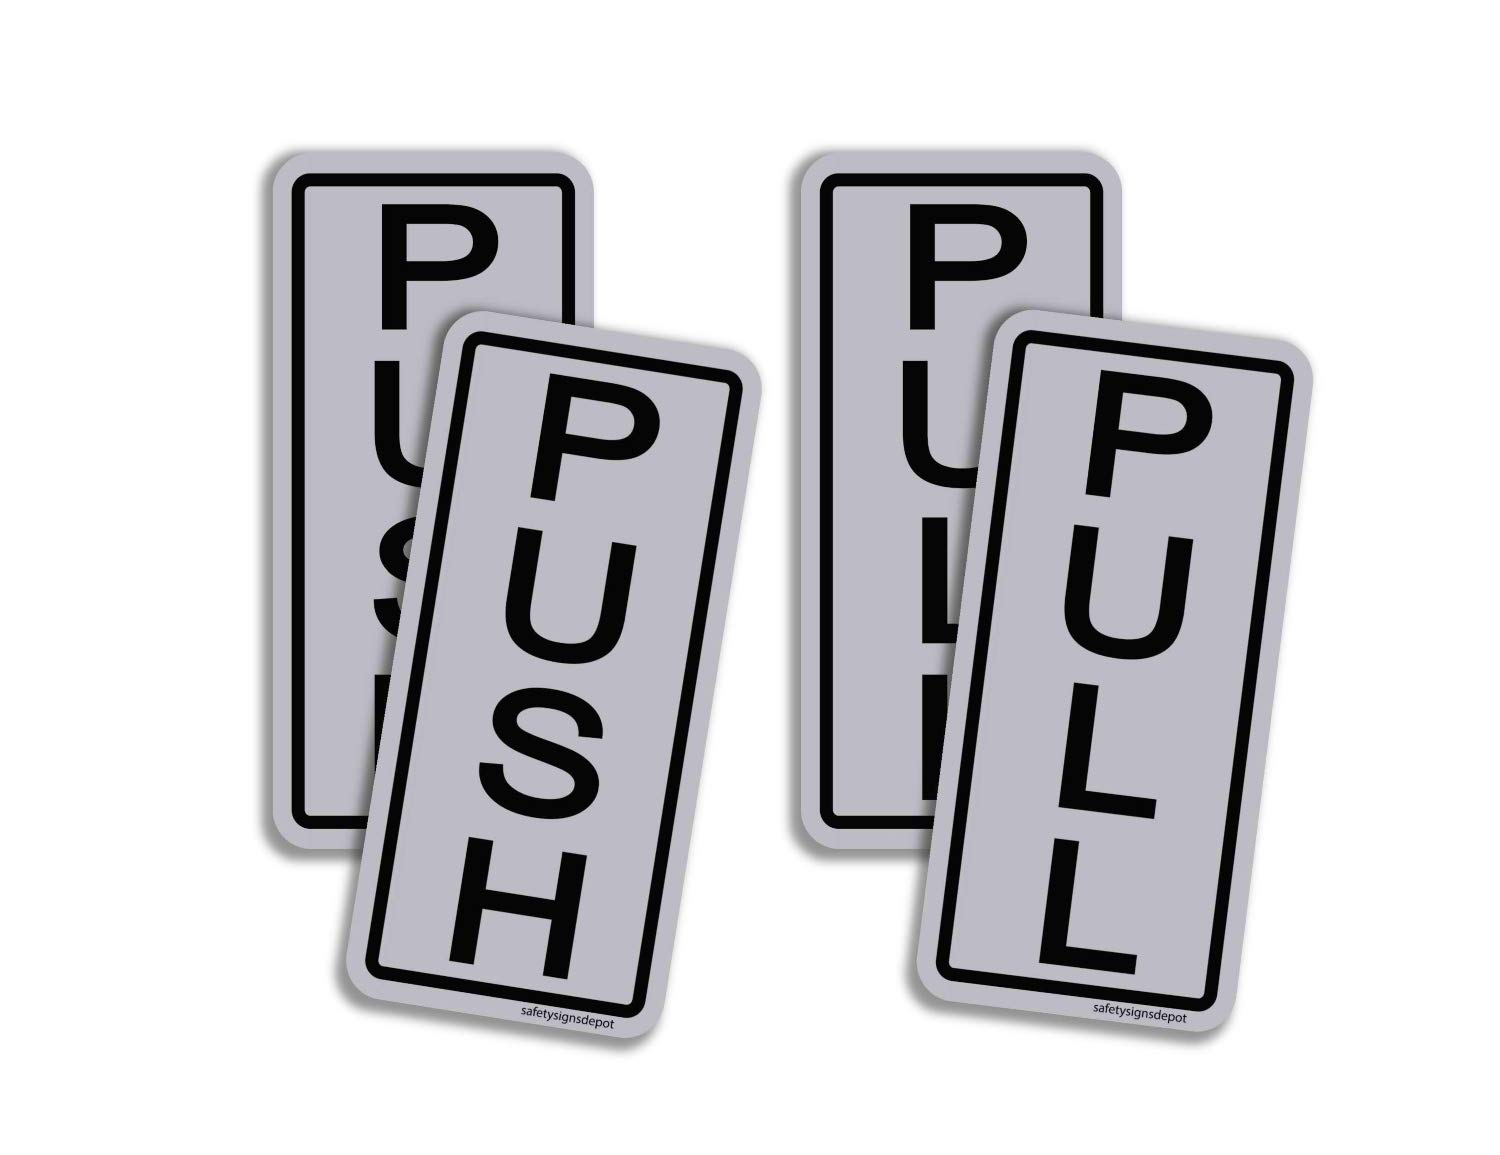 Adhesive Vinyl Decals UV Laminated for Business 3 Push Pull Door Sticker Signs Vertical 2 x 5 Pack of 3 Store and Office